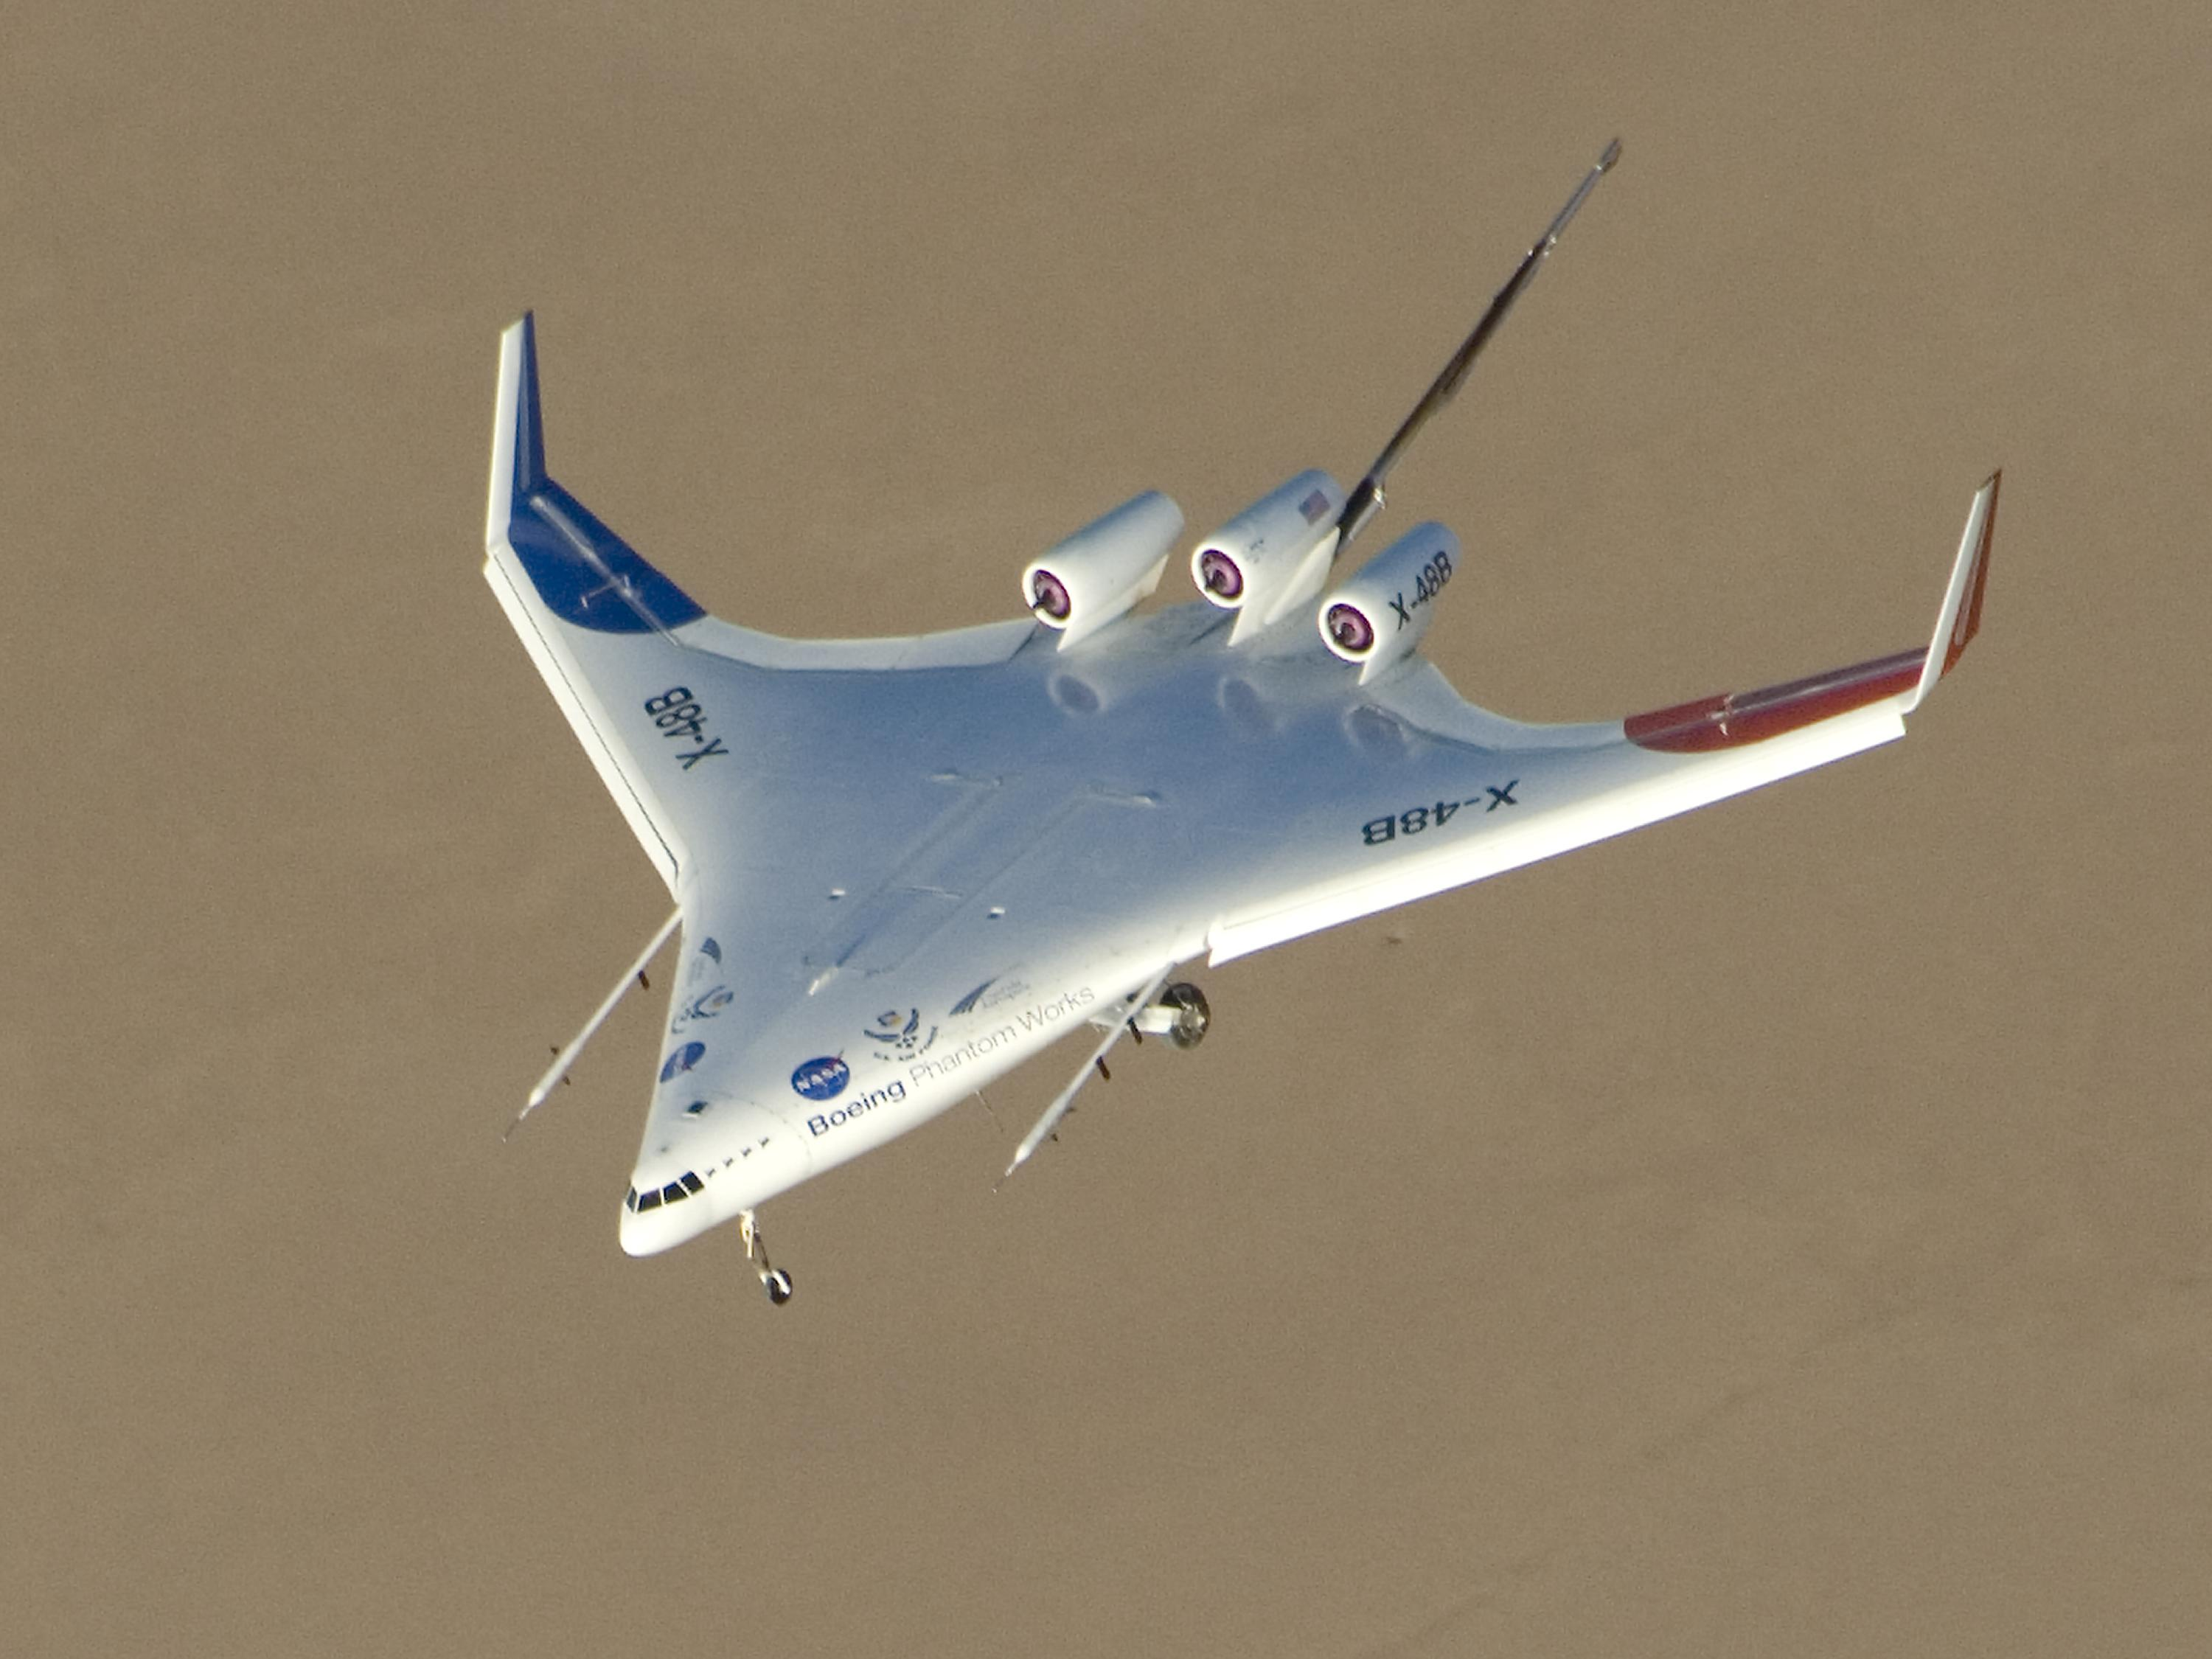 nasa x 48 drone aircraft - photo #22